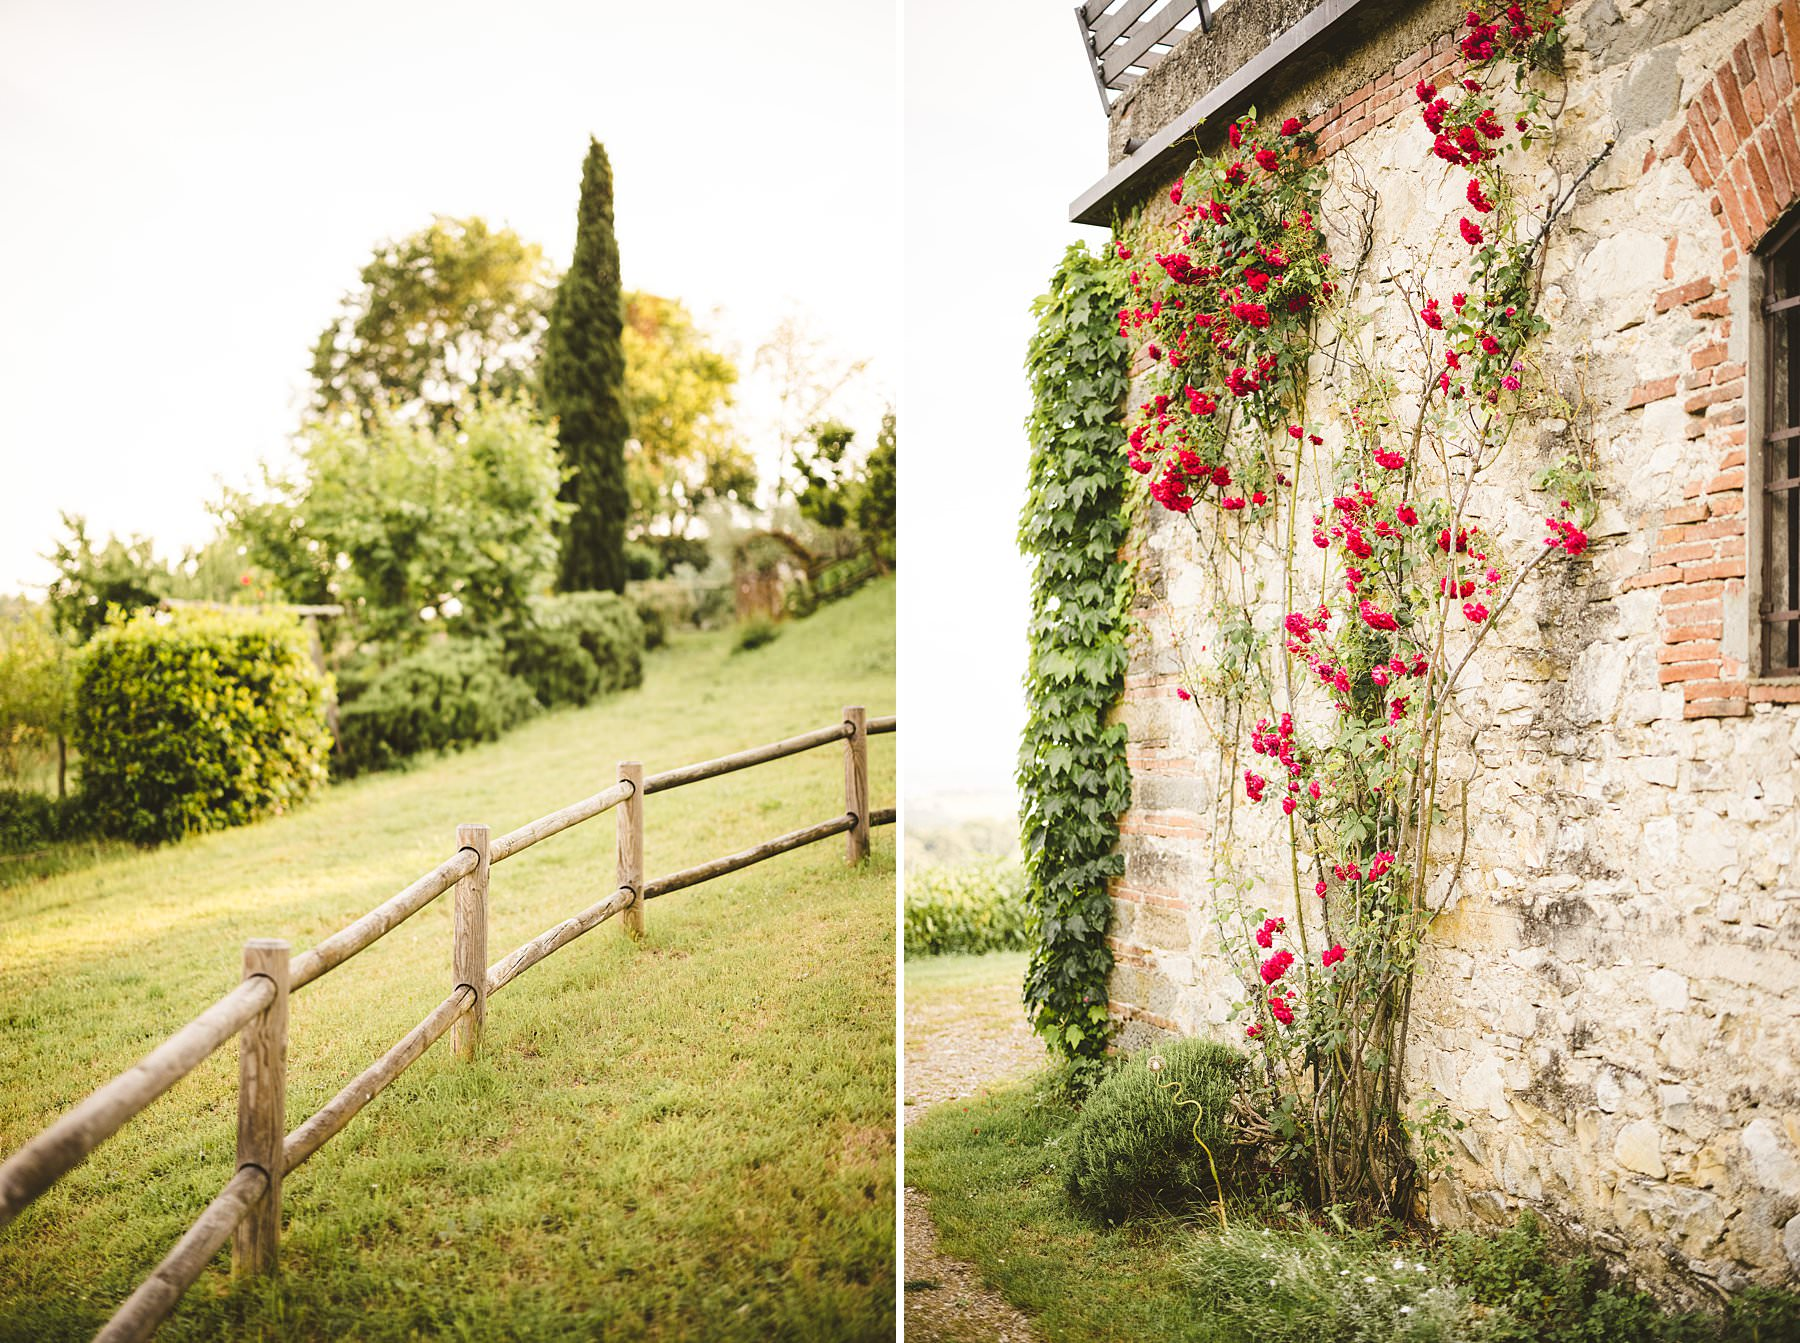 Poggio Tre Lune is a perfect place located in the countryside of Tuscany near Florence to enjoy a summer vacation and also to organise a couple photo shoot and create everlasting memories with your loved partner